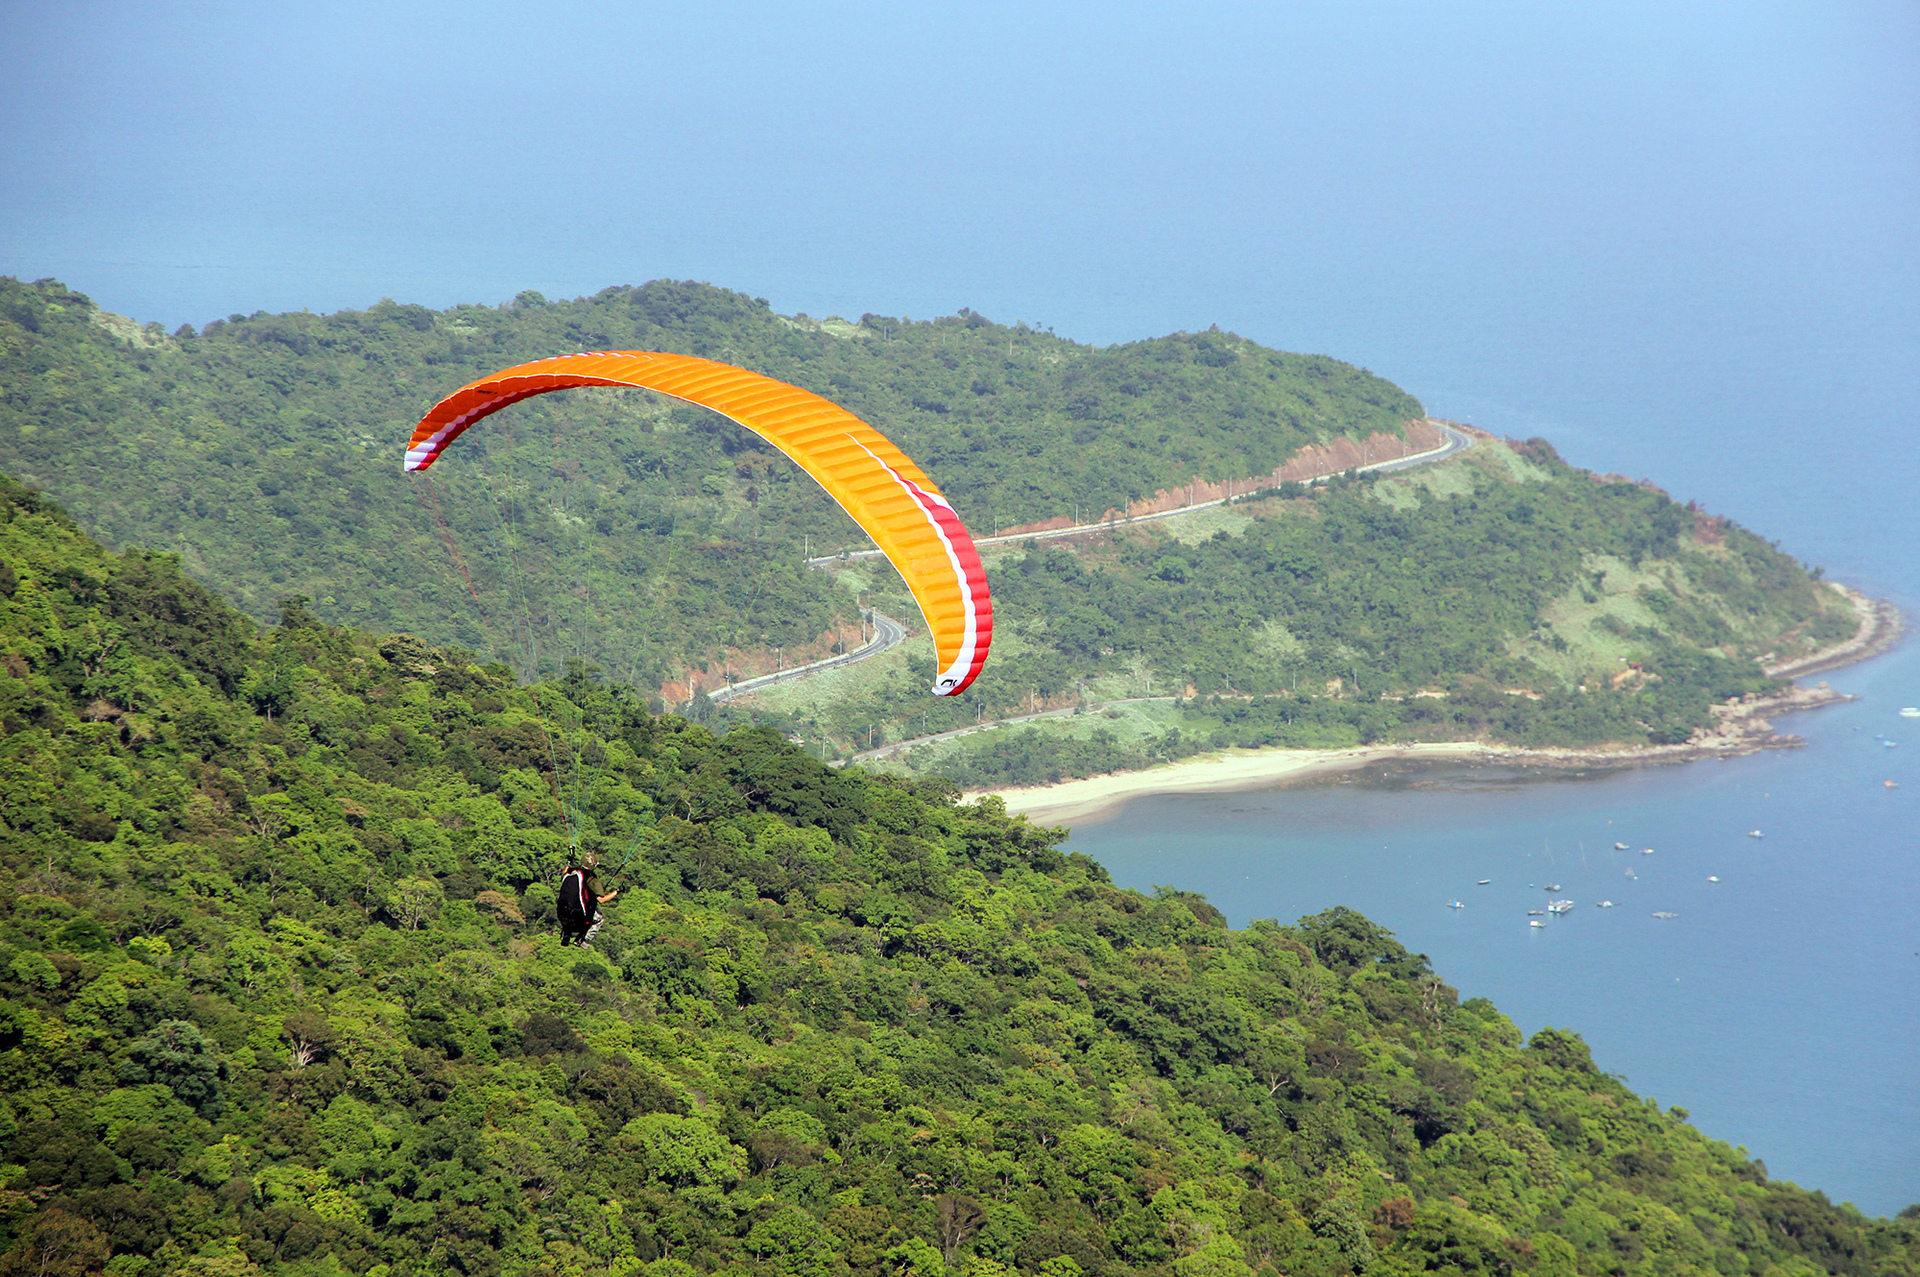 Paragliding from the top of the mountain in Son Tra Peninsula